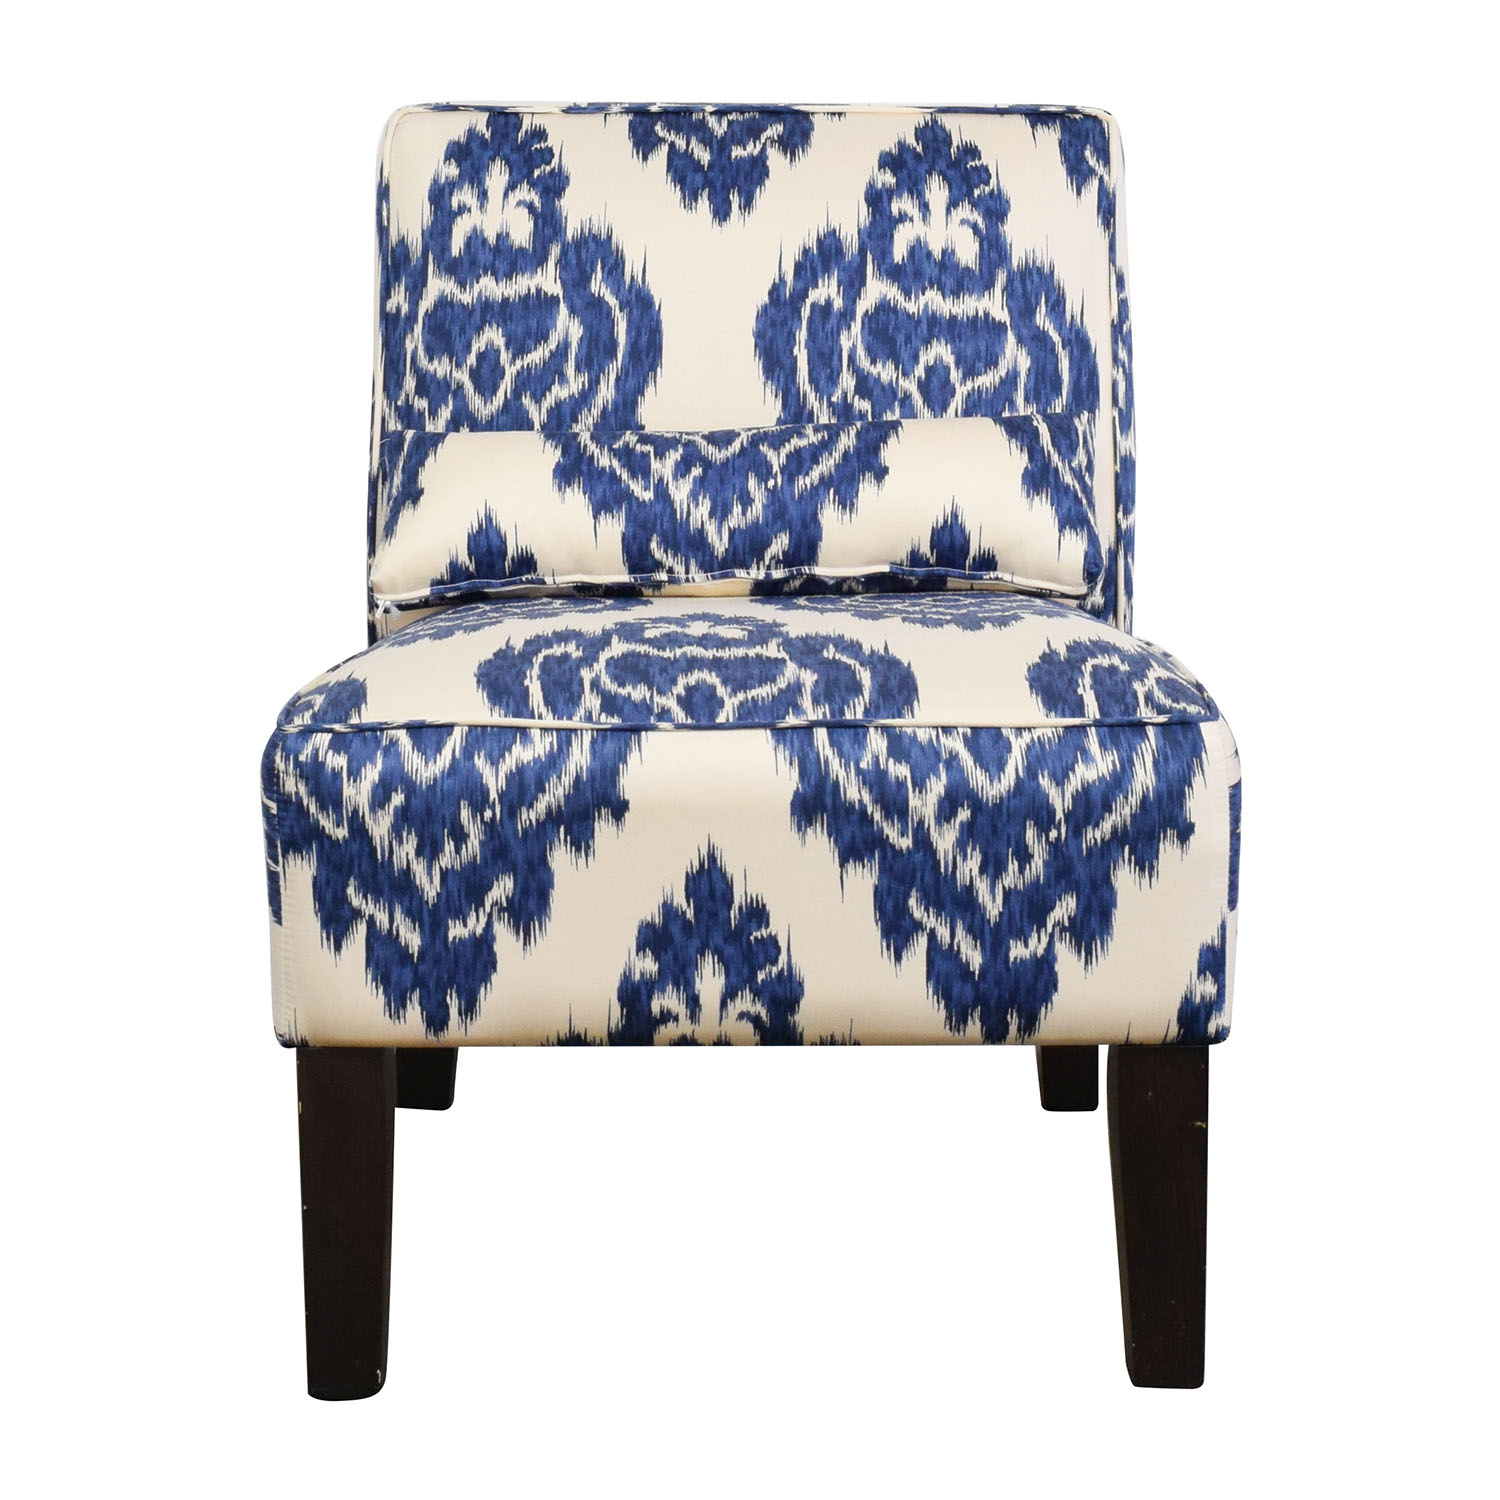 52 Off Overstock Overstock Blue And White Accent Chair